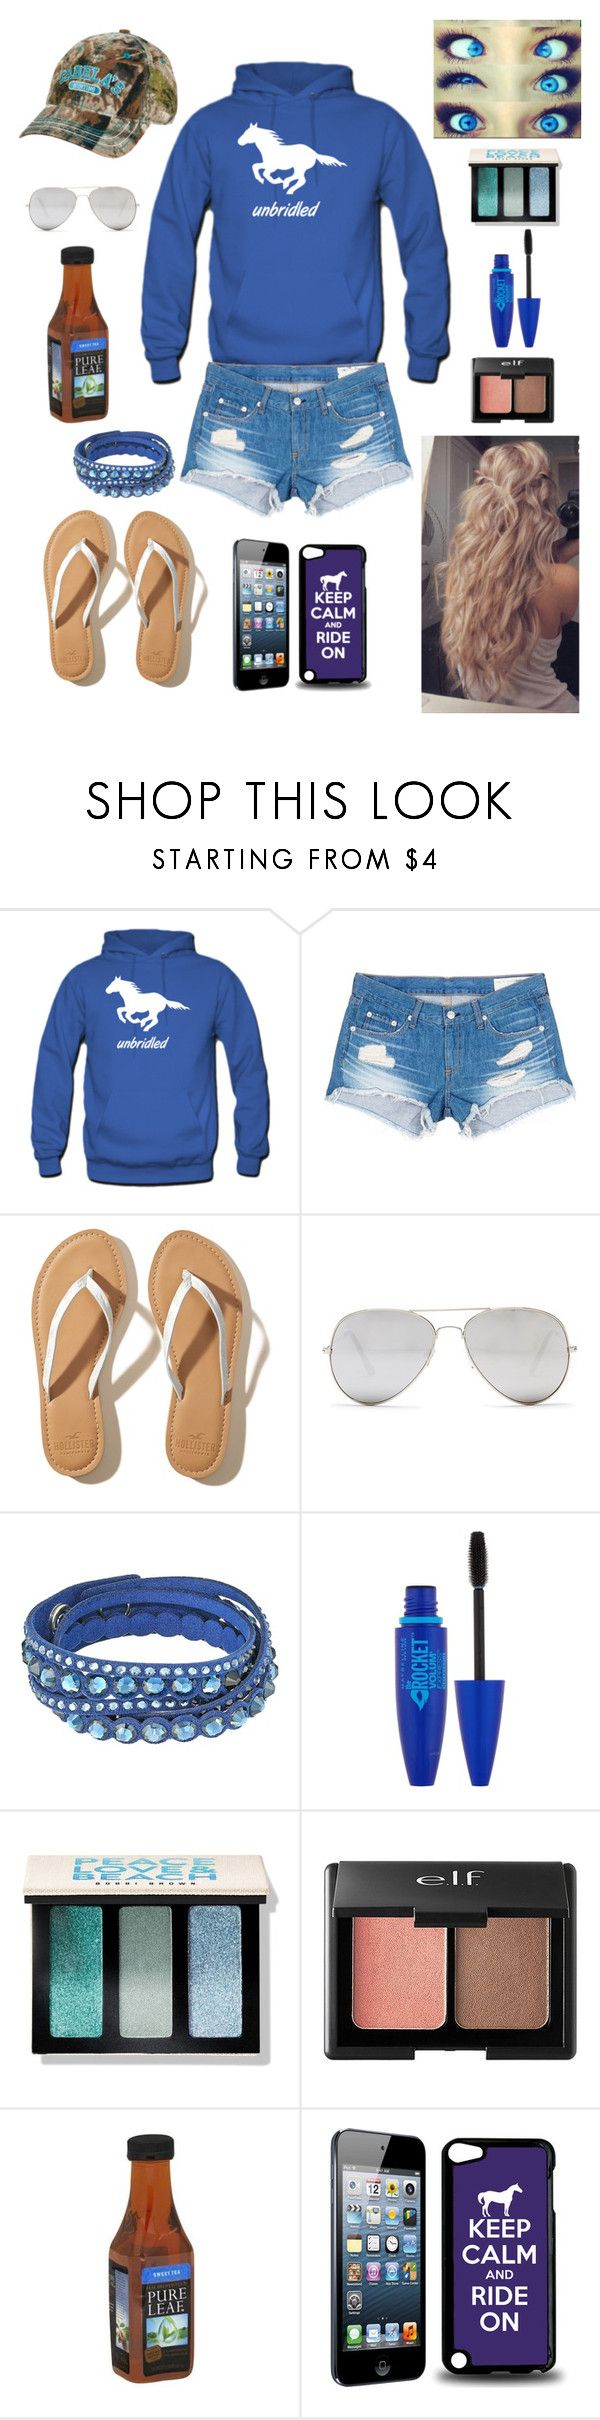 """That's me "" by cassidymiller-1 ❤ liked on Polyvore featuring rag & bone/JEAN, Hollister Co., Sunny Rebel, Swarovski, Maybelline, Bobbi Brown Cosmetics and Charlotte Russe"